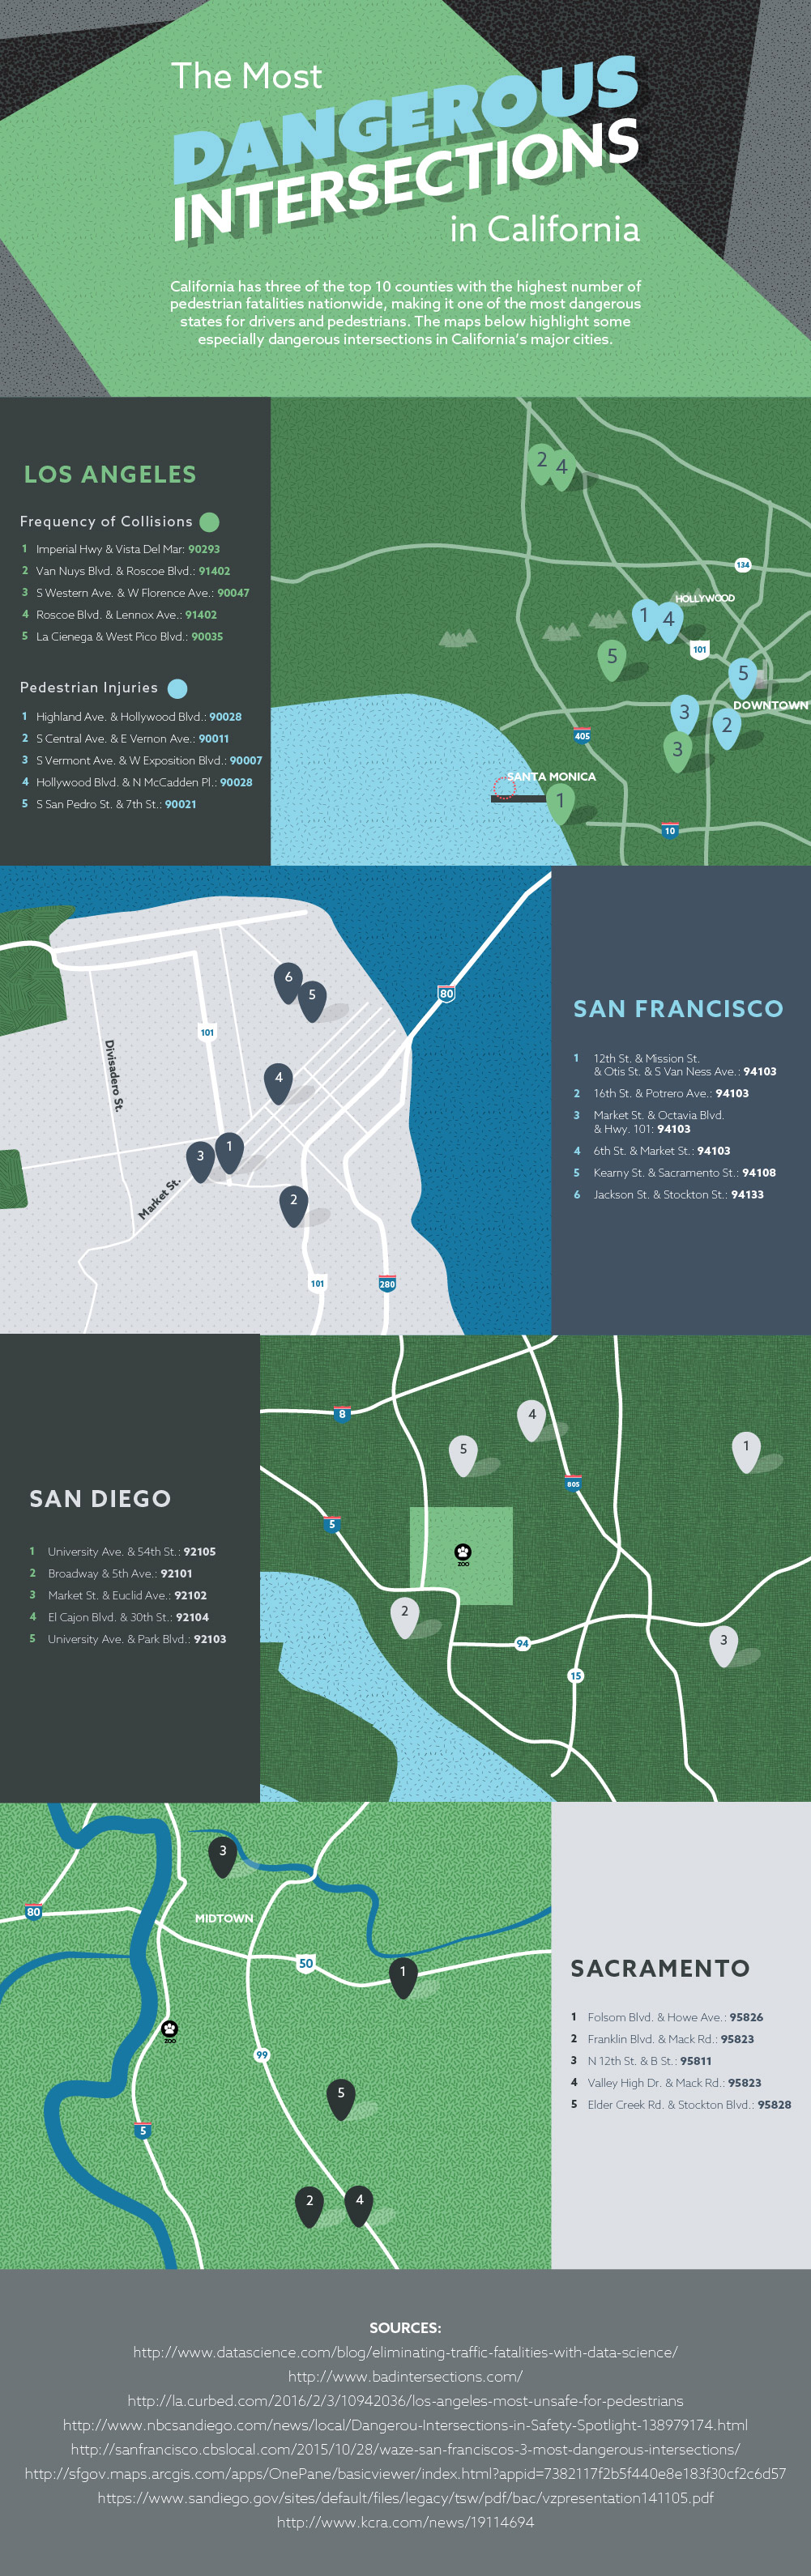 Dangerous Intersections in CA Infographic